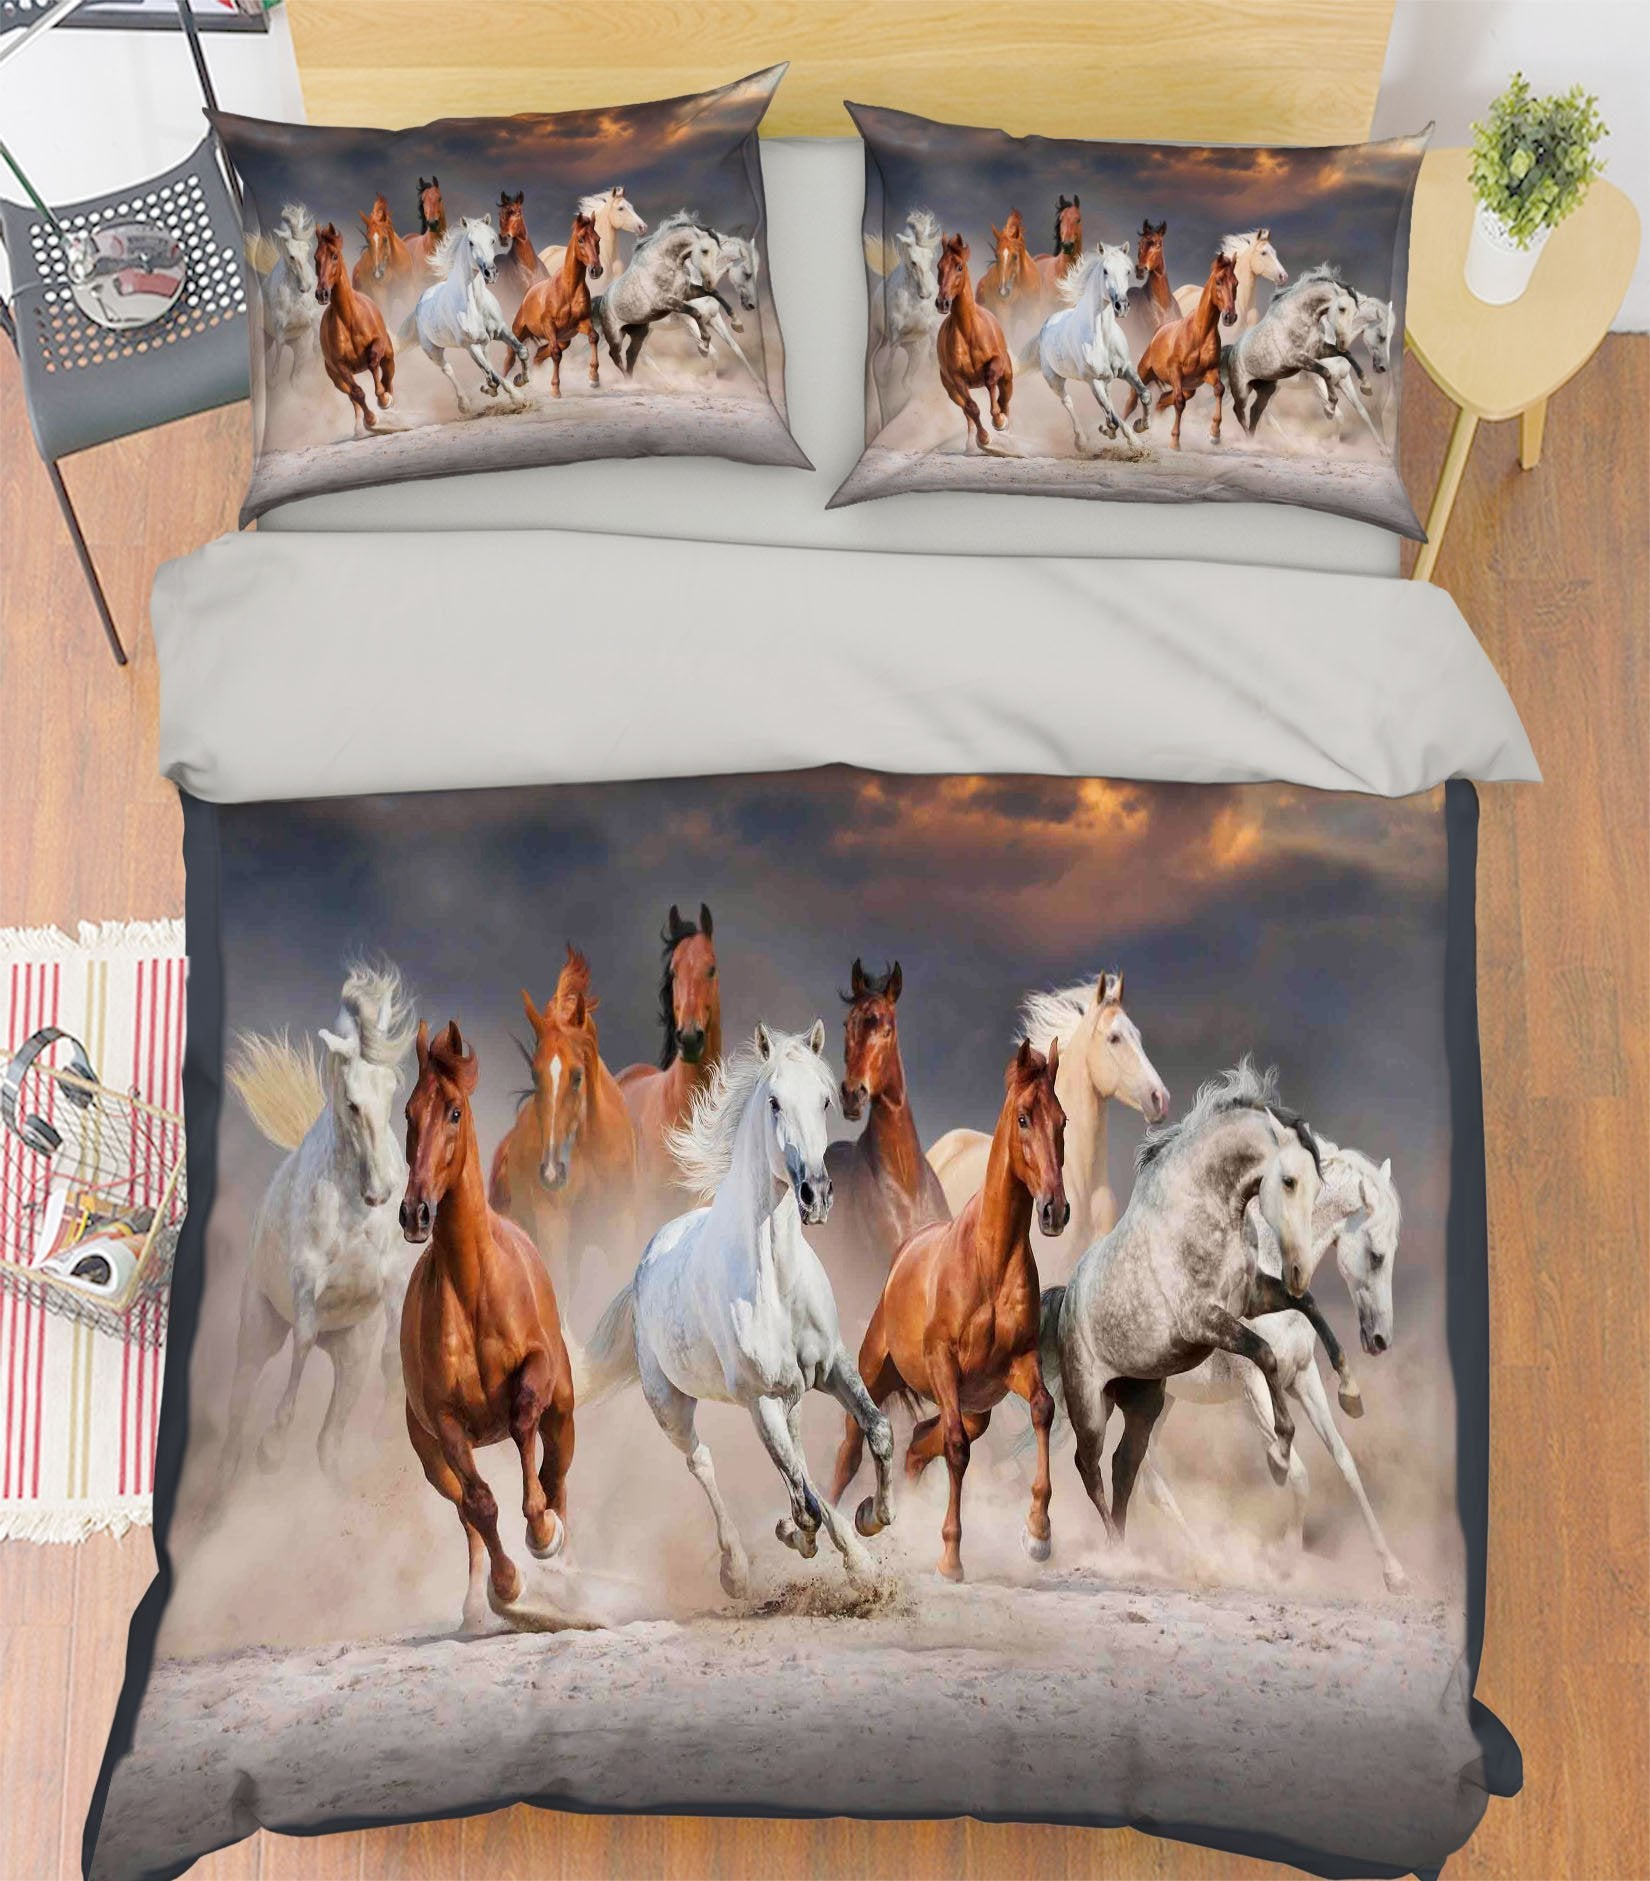 3D Running Horse 130 Bed Pillowcases Quilt Wallpaper AJ Wallpaper